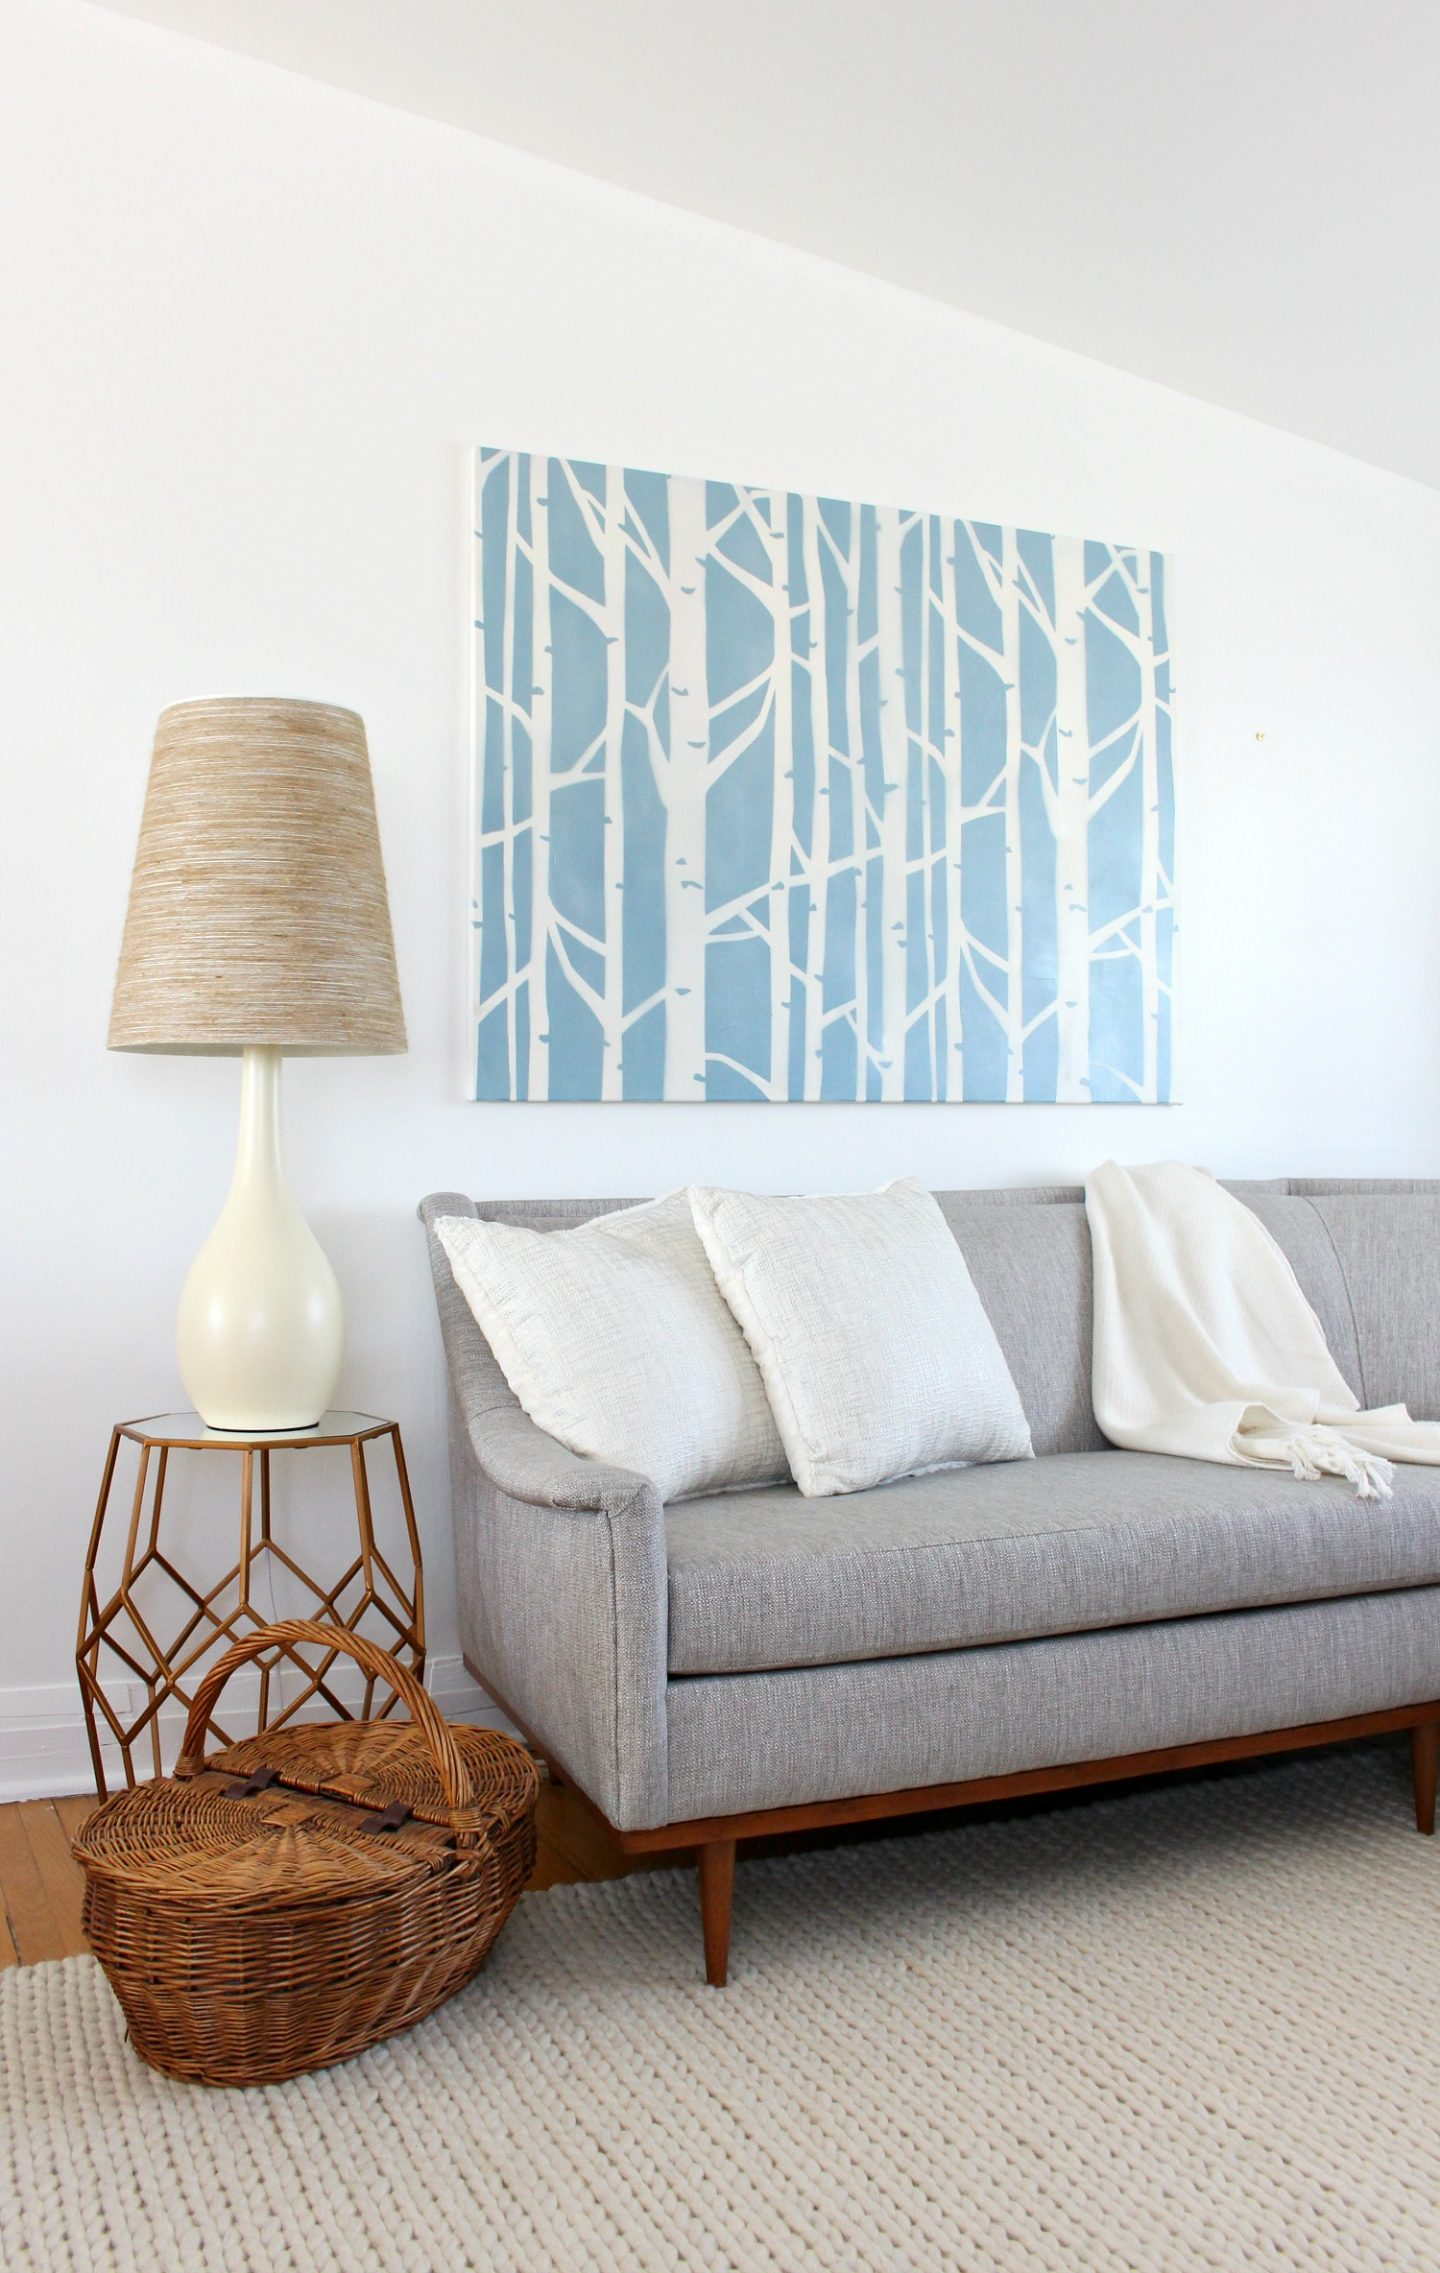 DIY Stenciled Art: Renter-Friendly Spin on Birch Tree Wallpaper